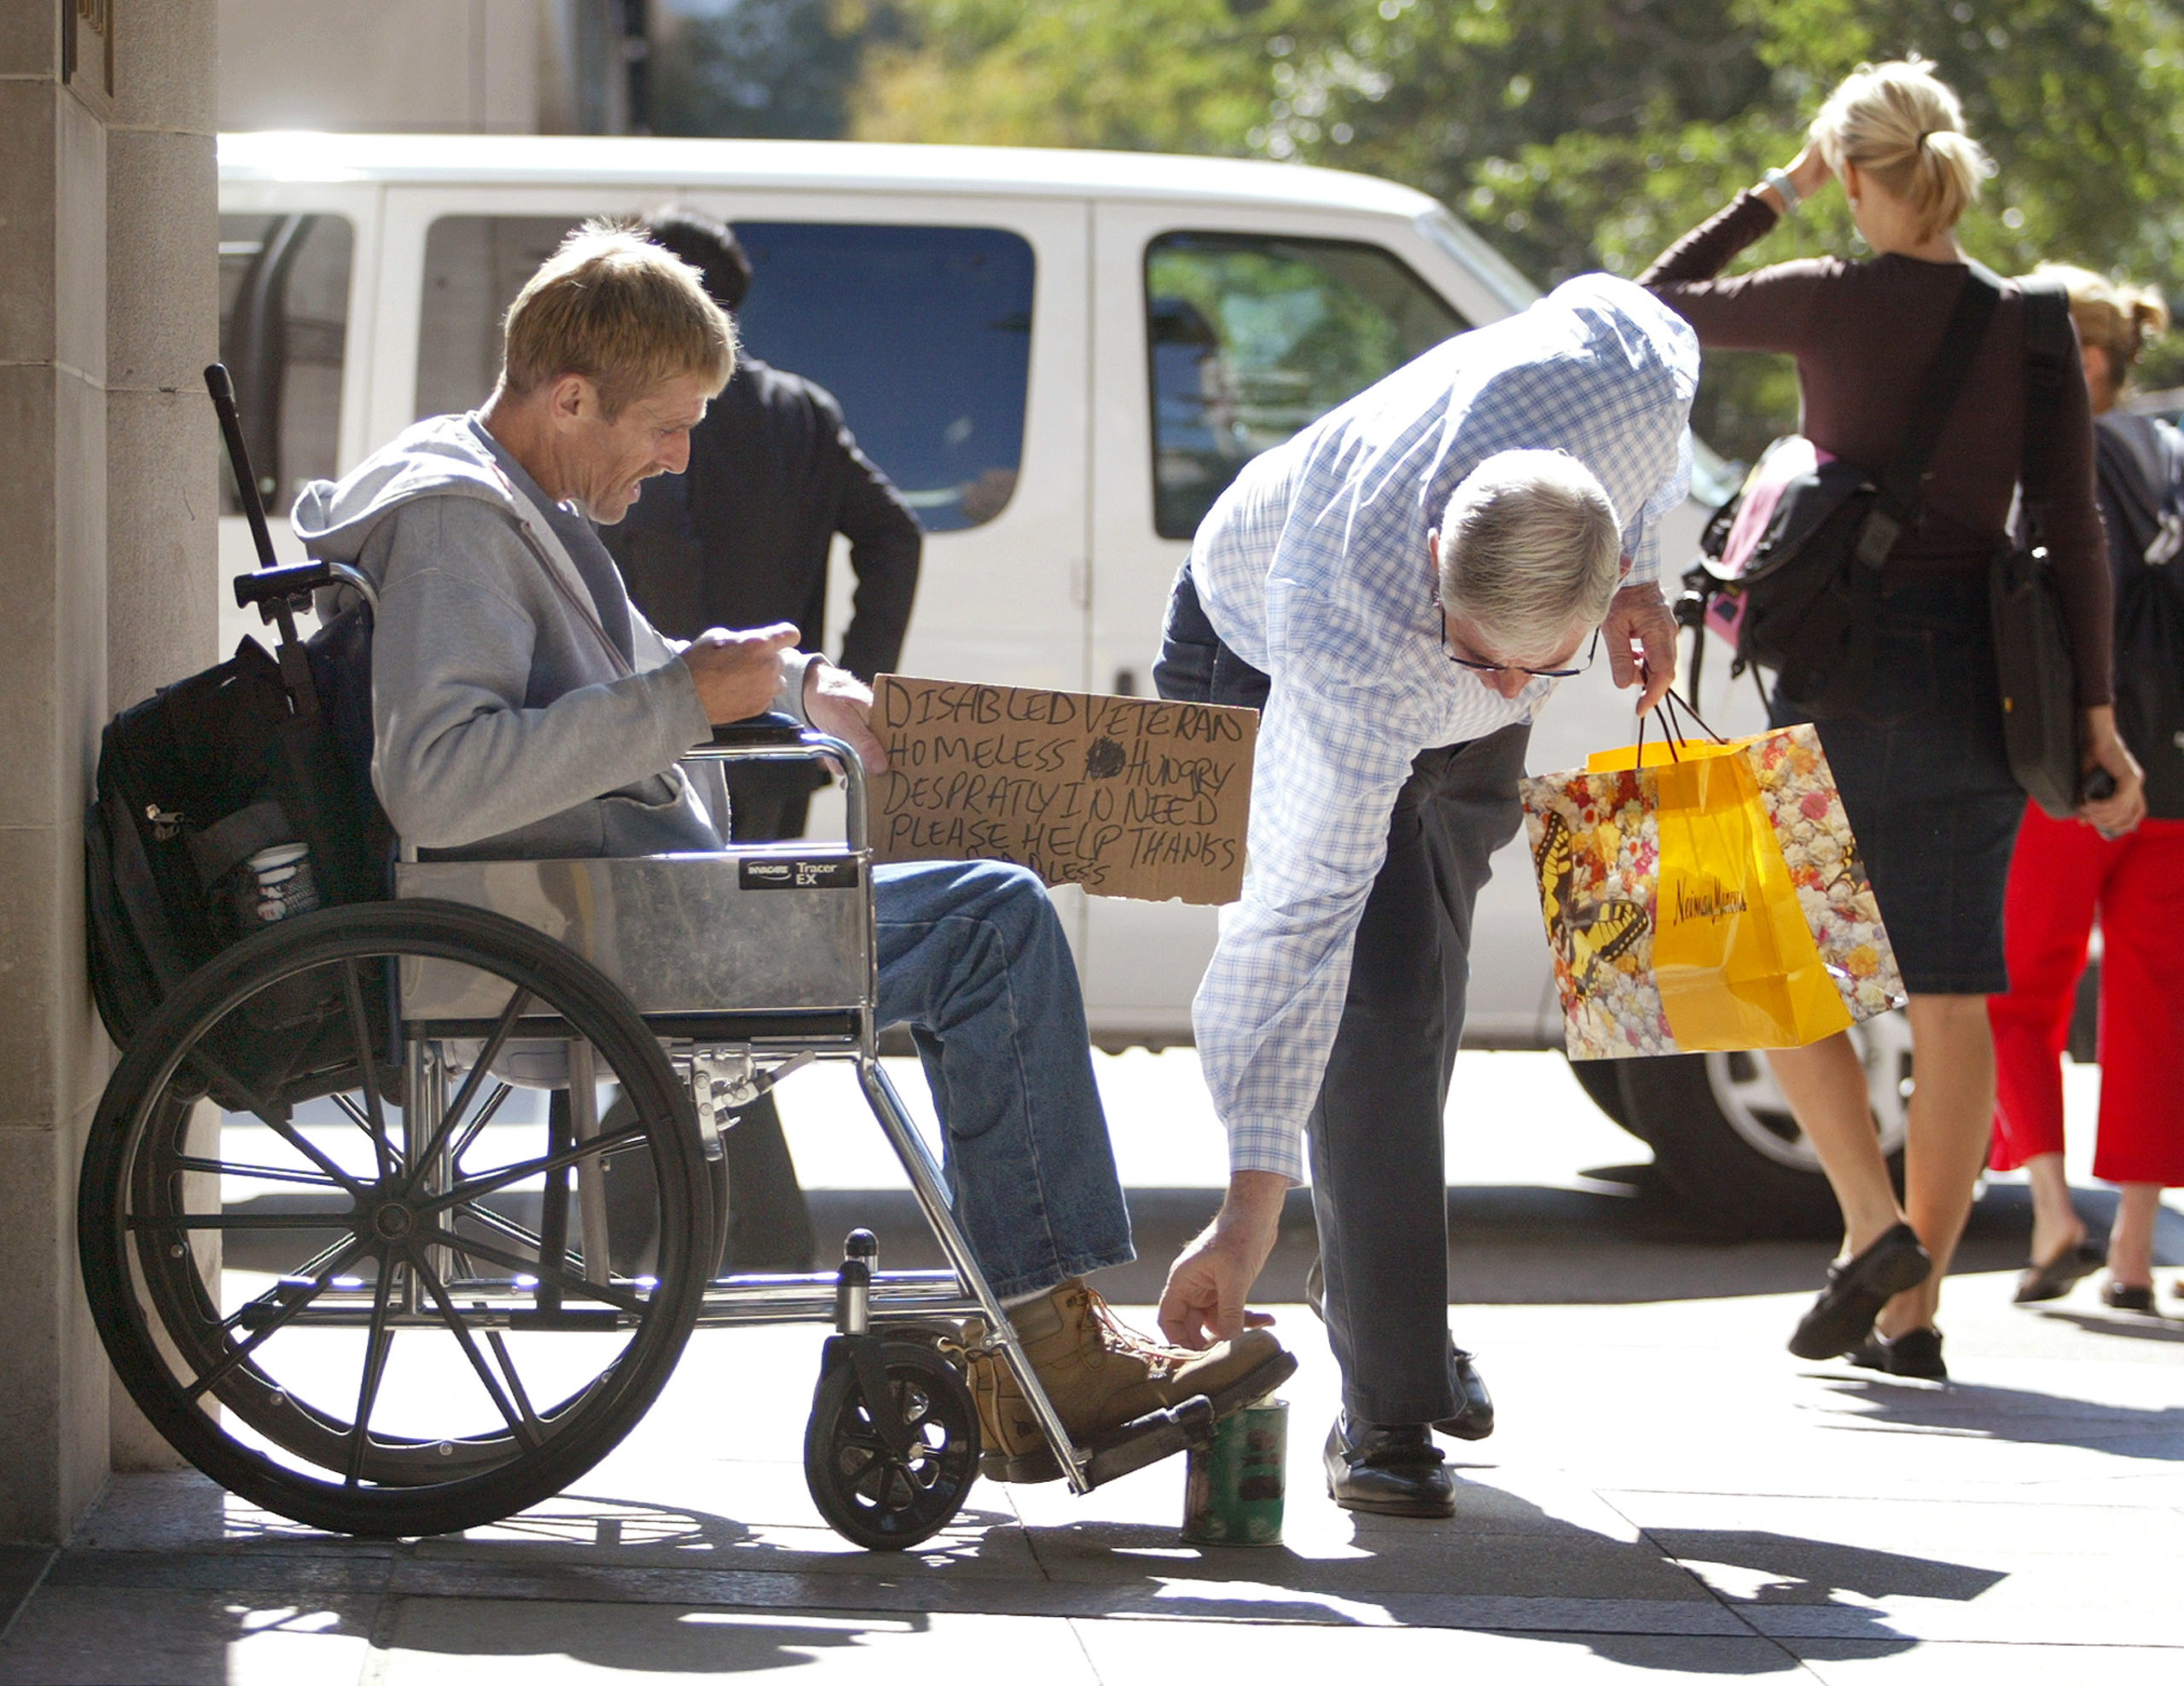 """A passerby drops some loose change into the can of a homeless, disabled veteran in his wheelchair looking for money along the shopping area known as the """"Magnificent Mile"""" on Michigan Ave. September 30, 2004 in Chicago. Chicago alderman are looking into an ordinance restricting areas of panhandling in the city. (Photo by Tim Boyle/Getty Images)"""